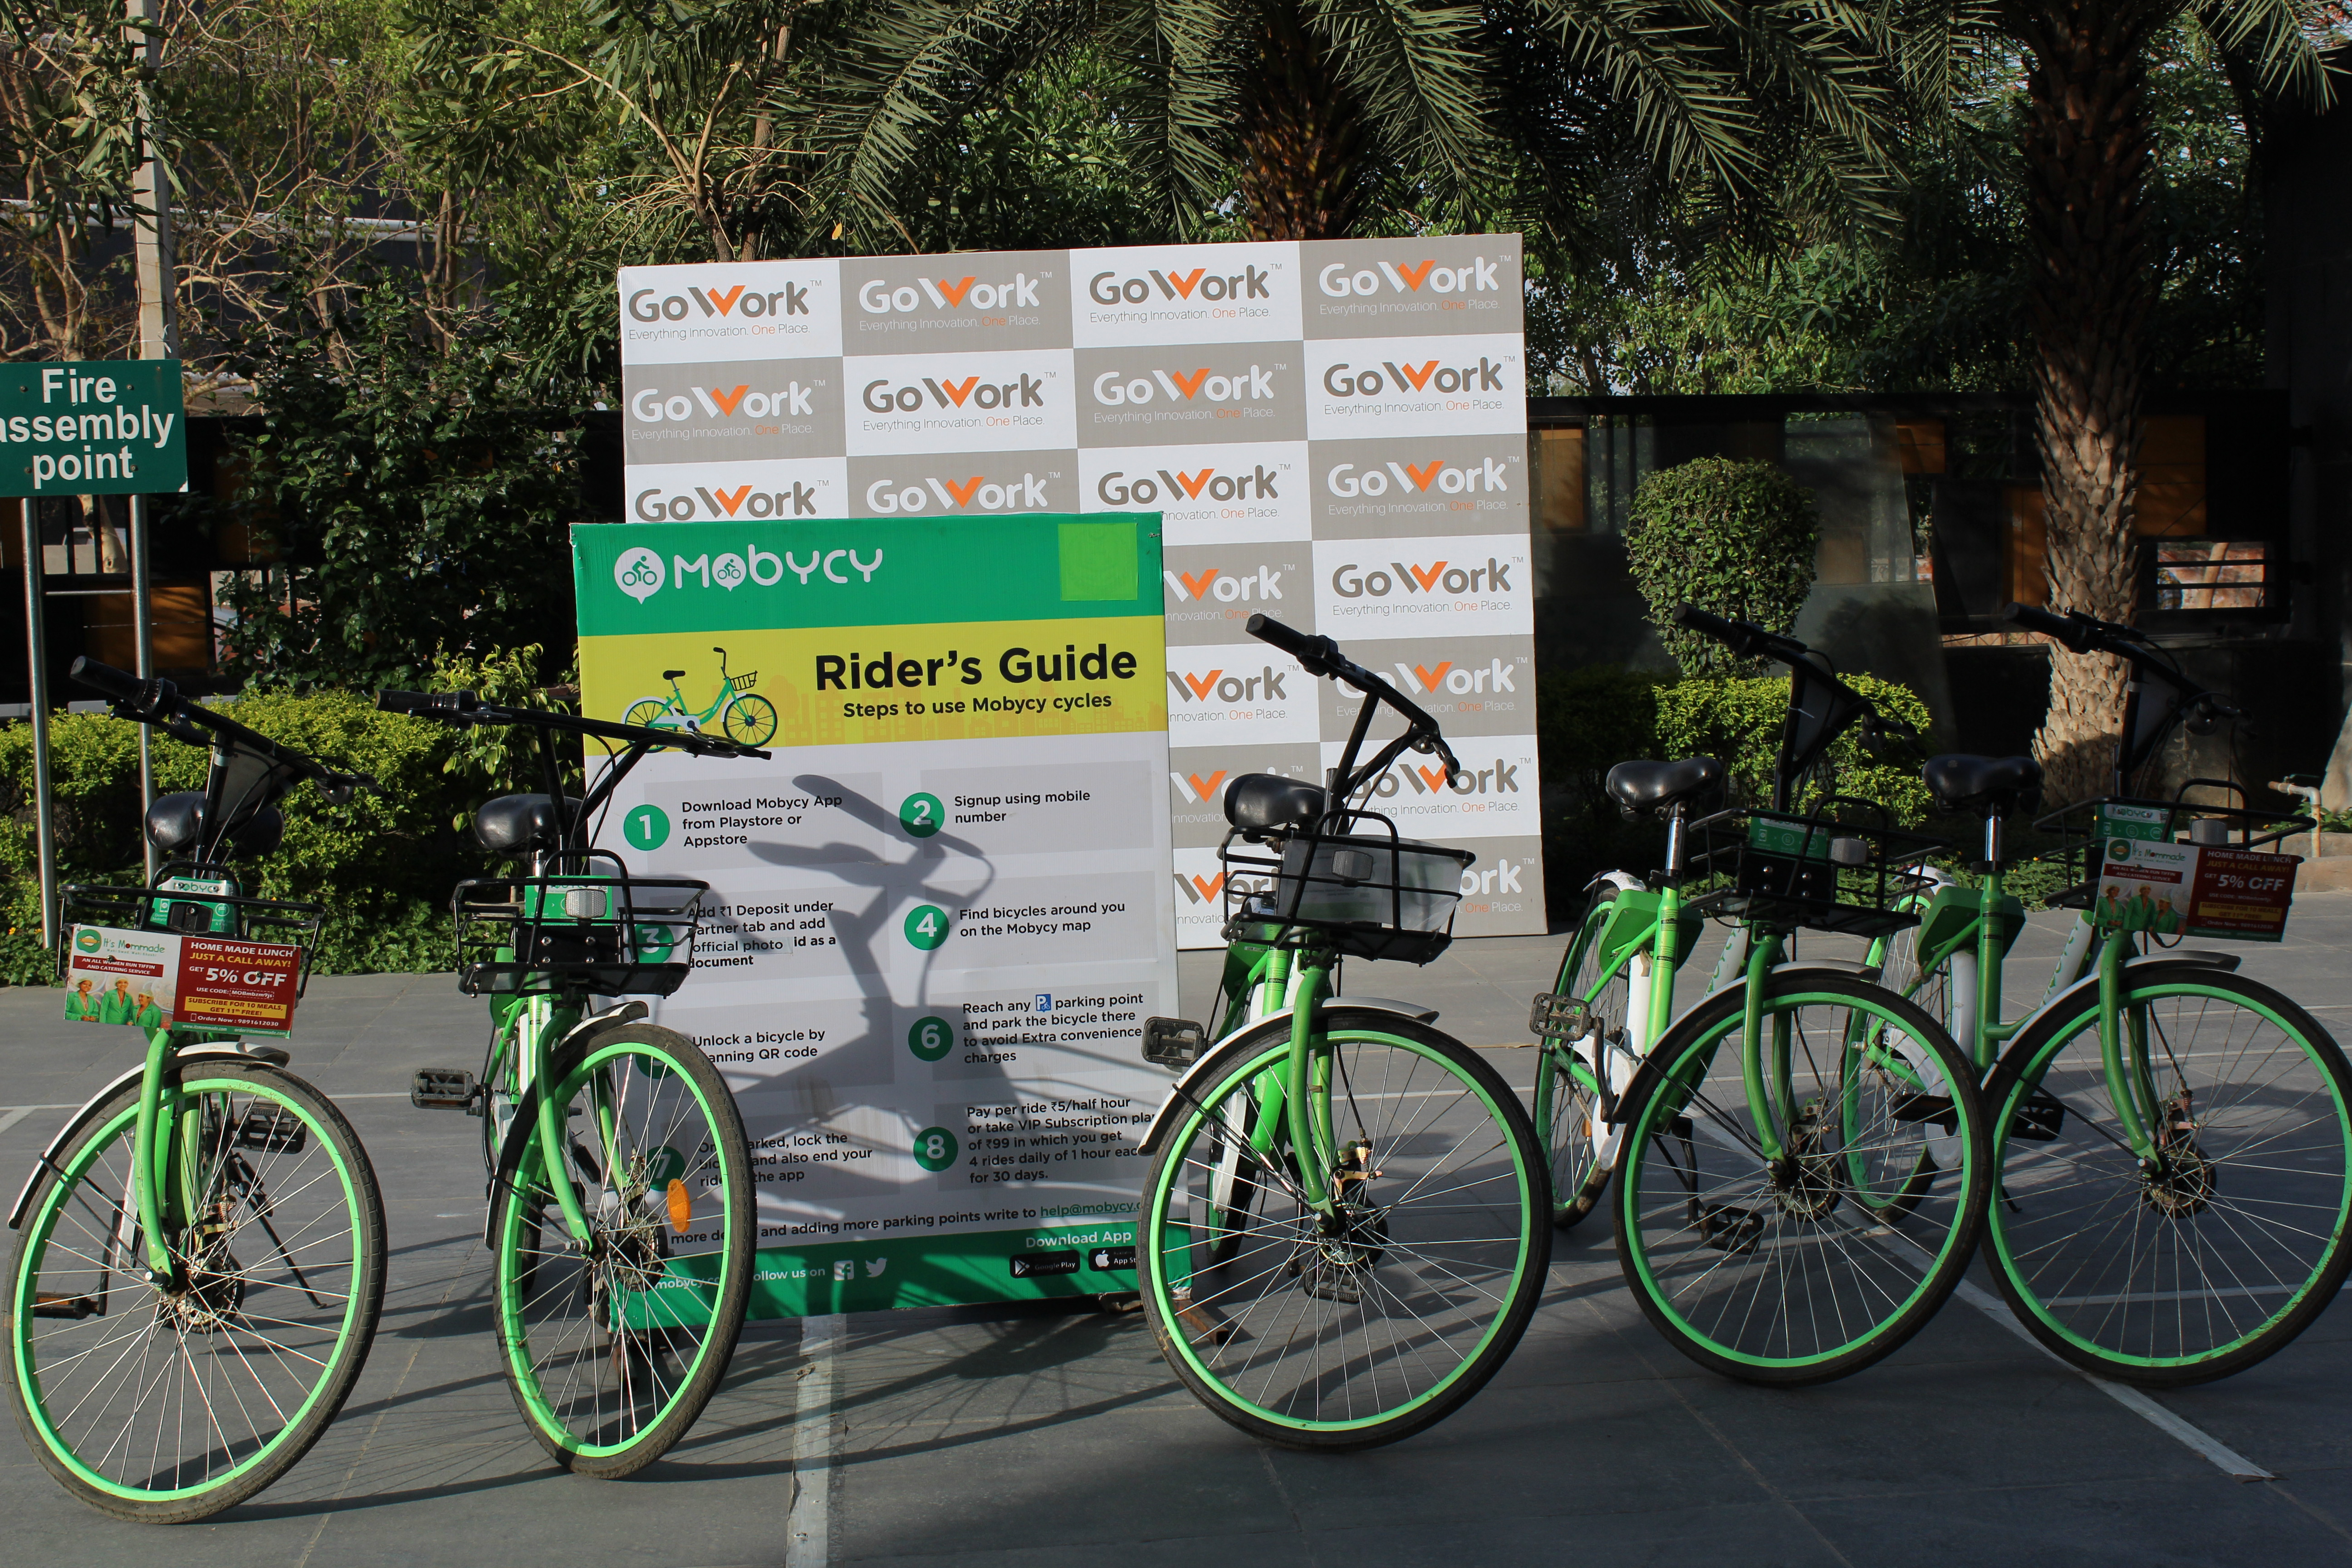 Mobycy to provide bicycles on its campus  to incorporate green practices